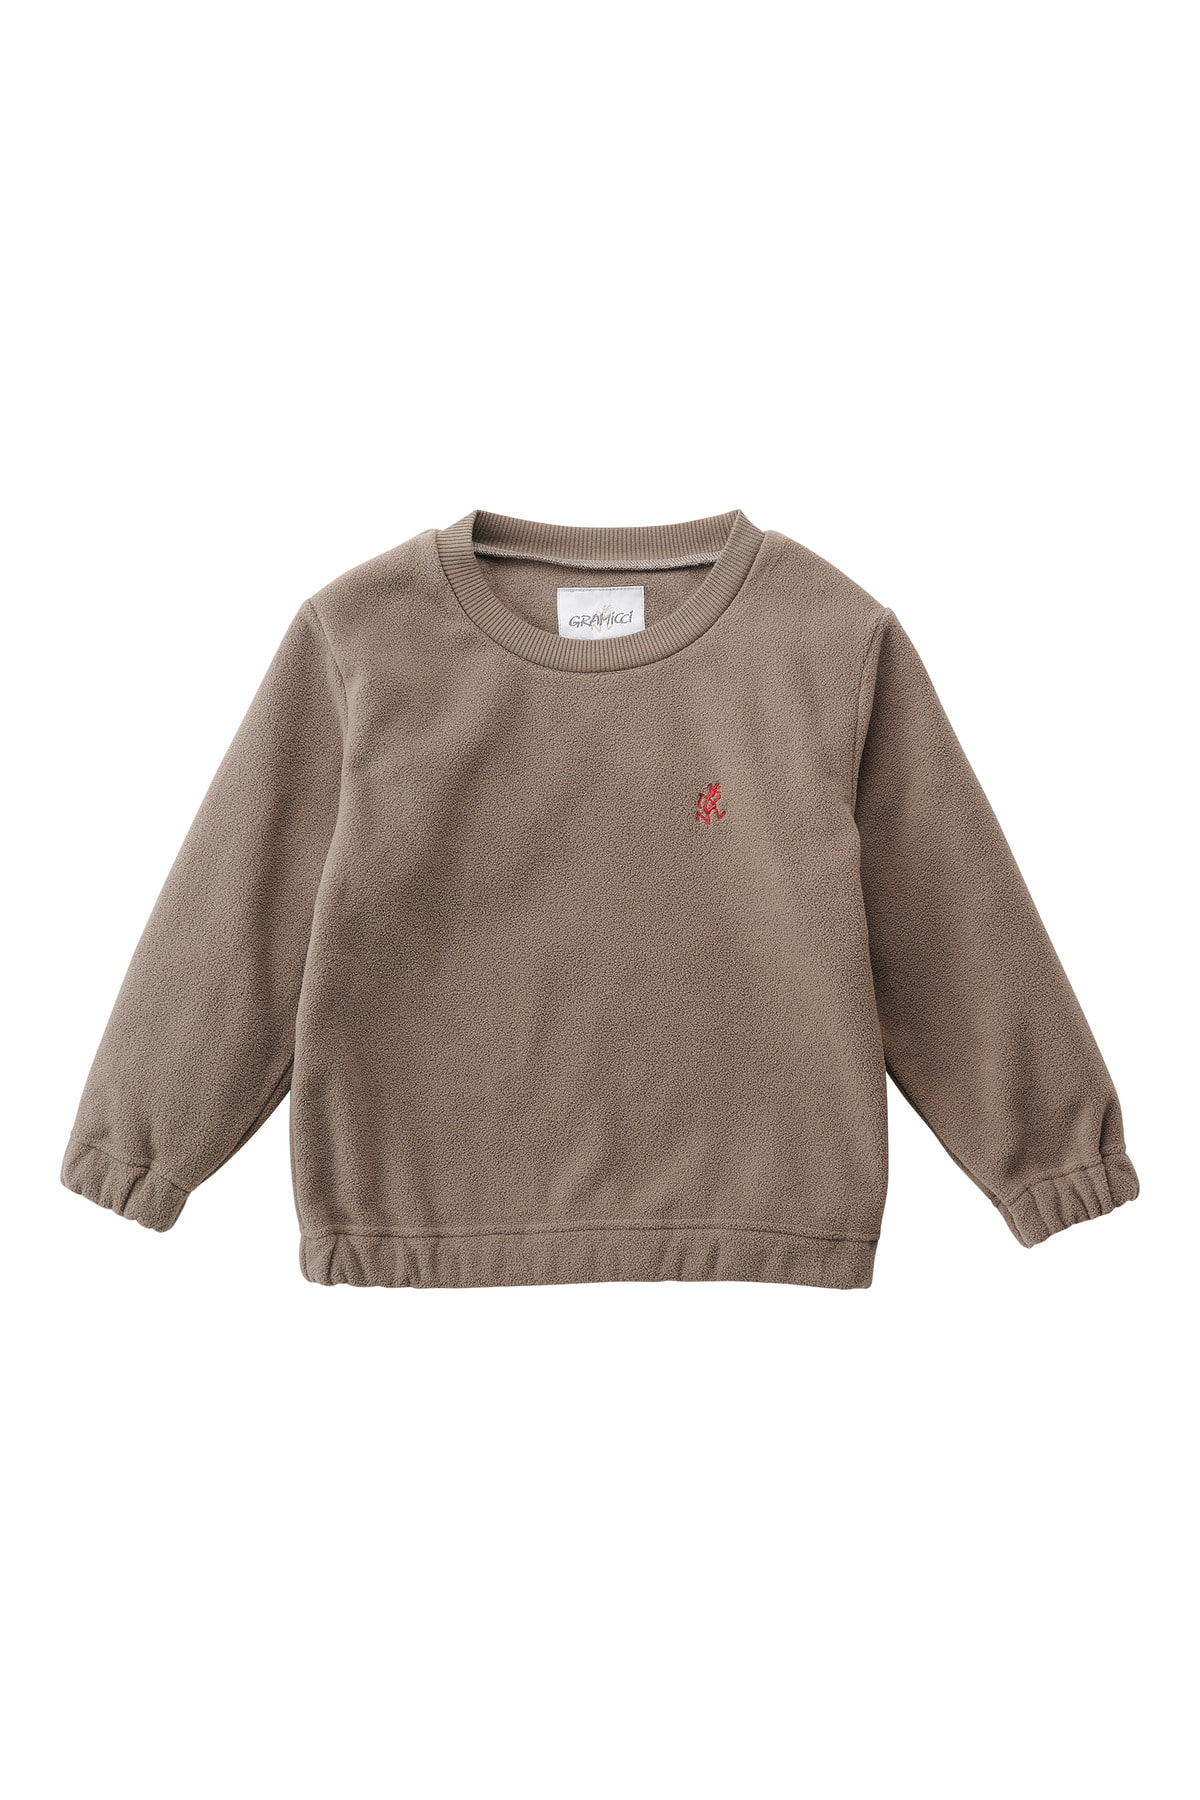 KIDS FLEECE CREW NECK WALNAUT